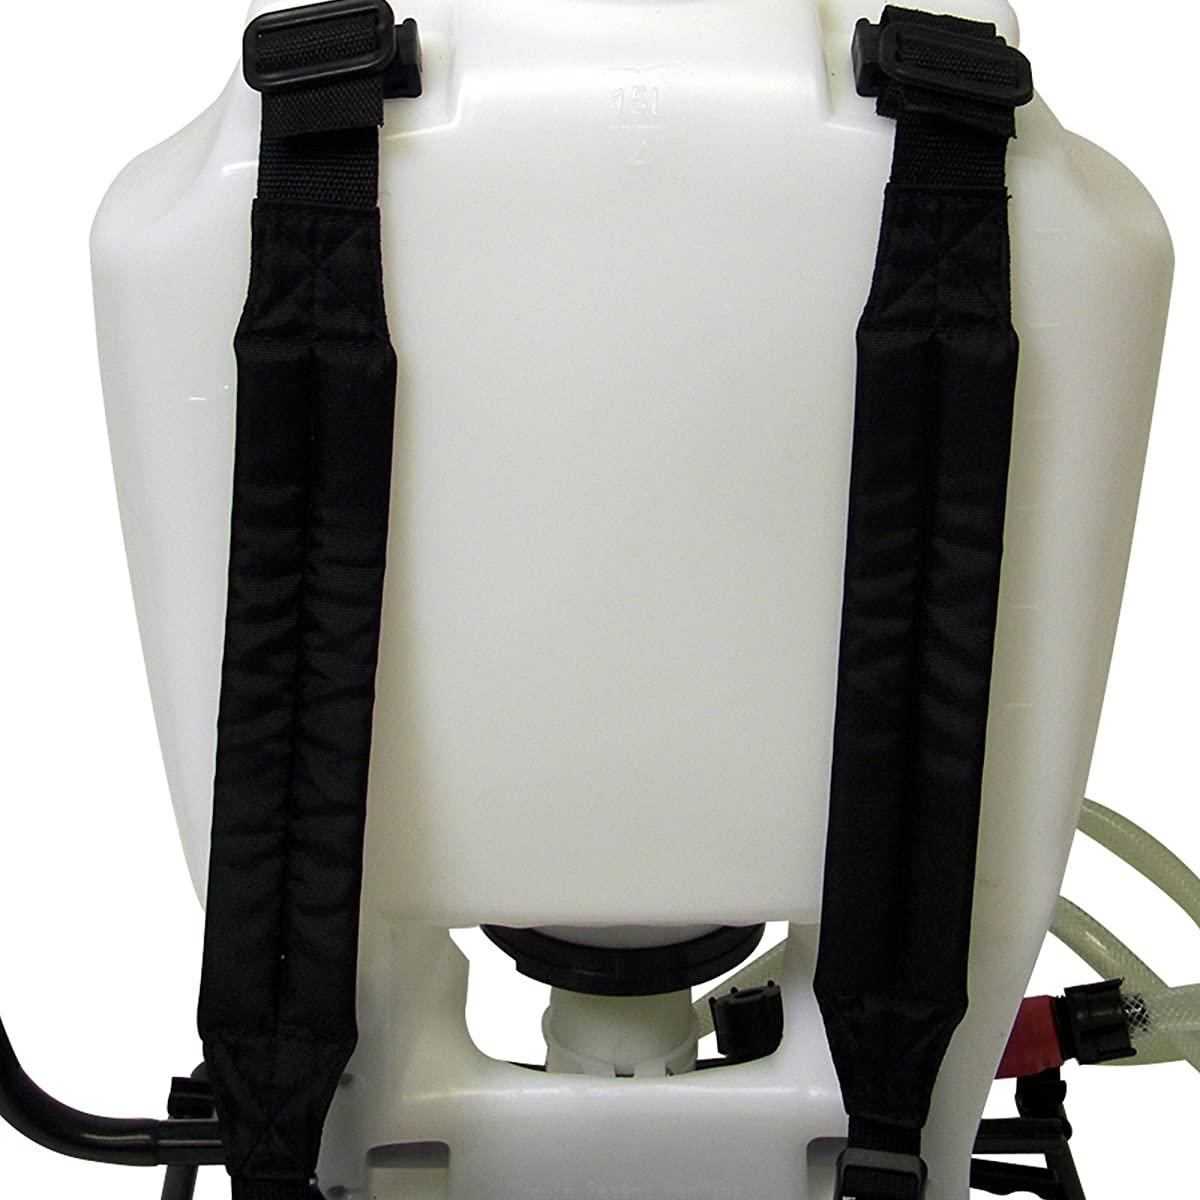 Chapin 61700N 4-Gallon SureSpray Backpack Sprayer For Fertilizer, Herbicides and Pesticides